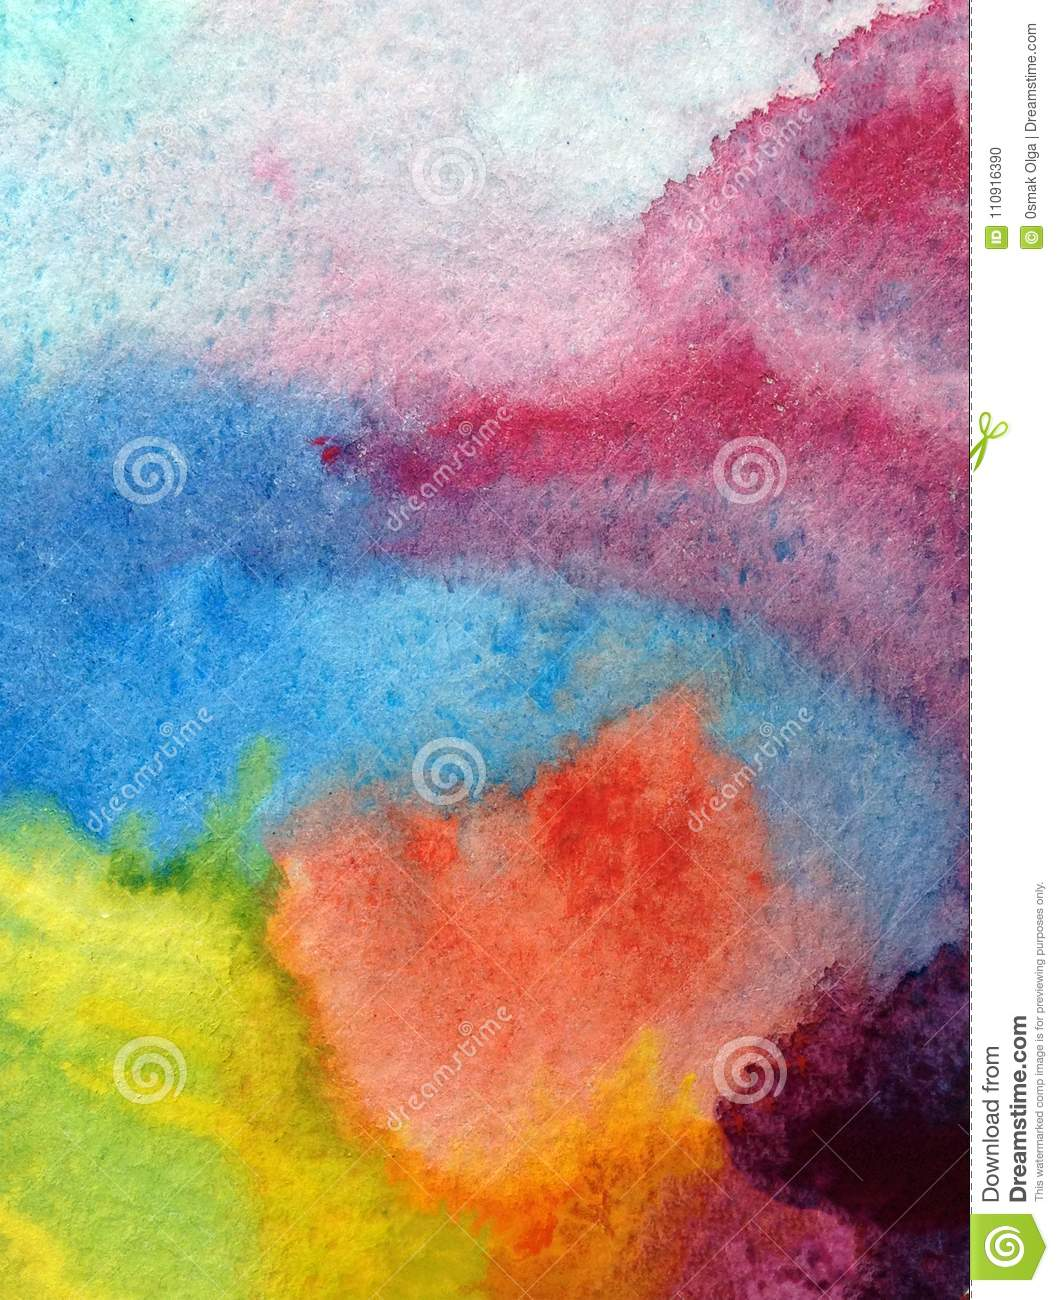 Watercolor art abstract background beautiful sun sunset clouds modern textured wet wash blurred fantasy